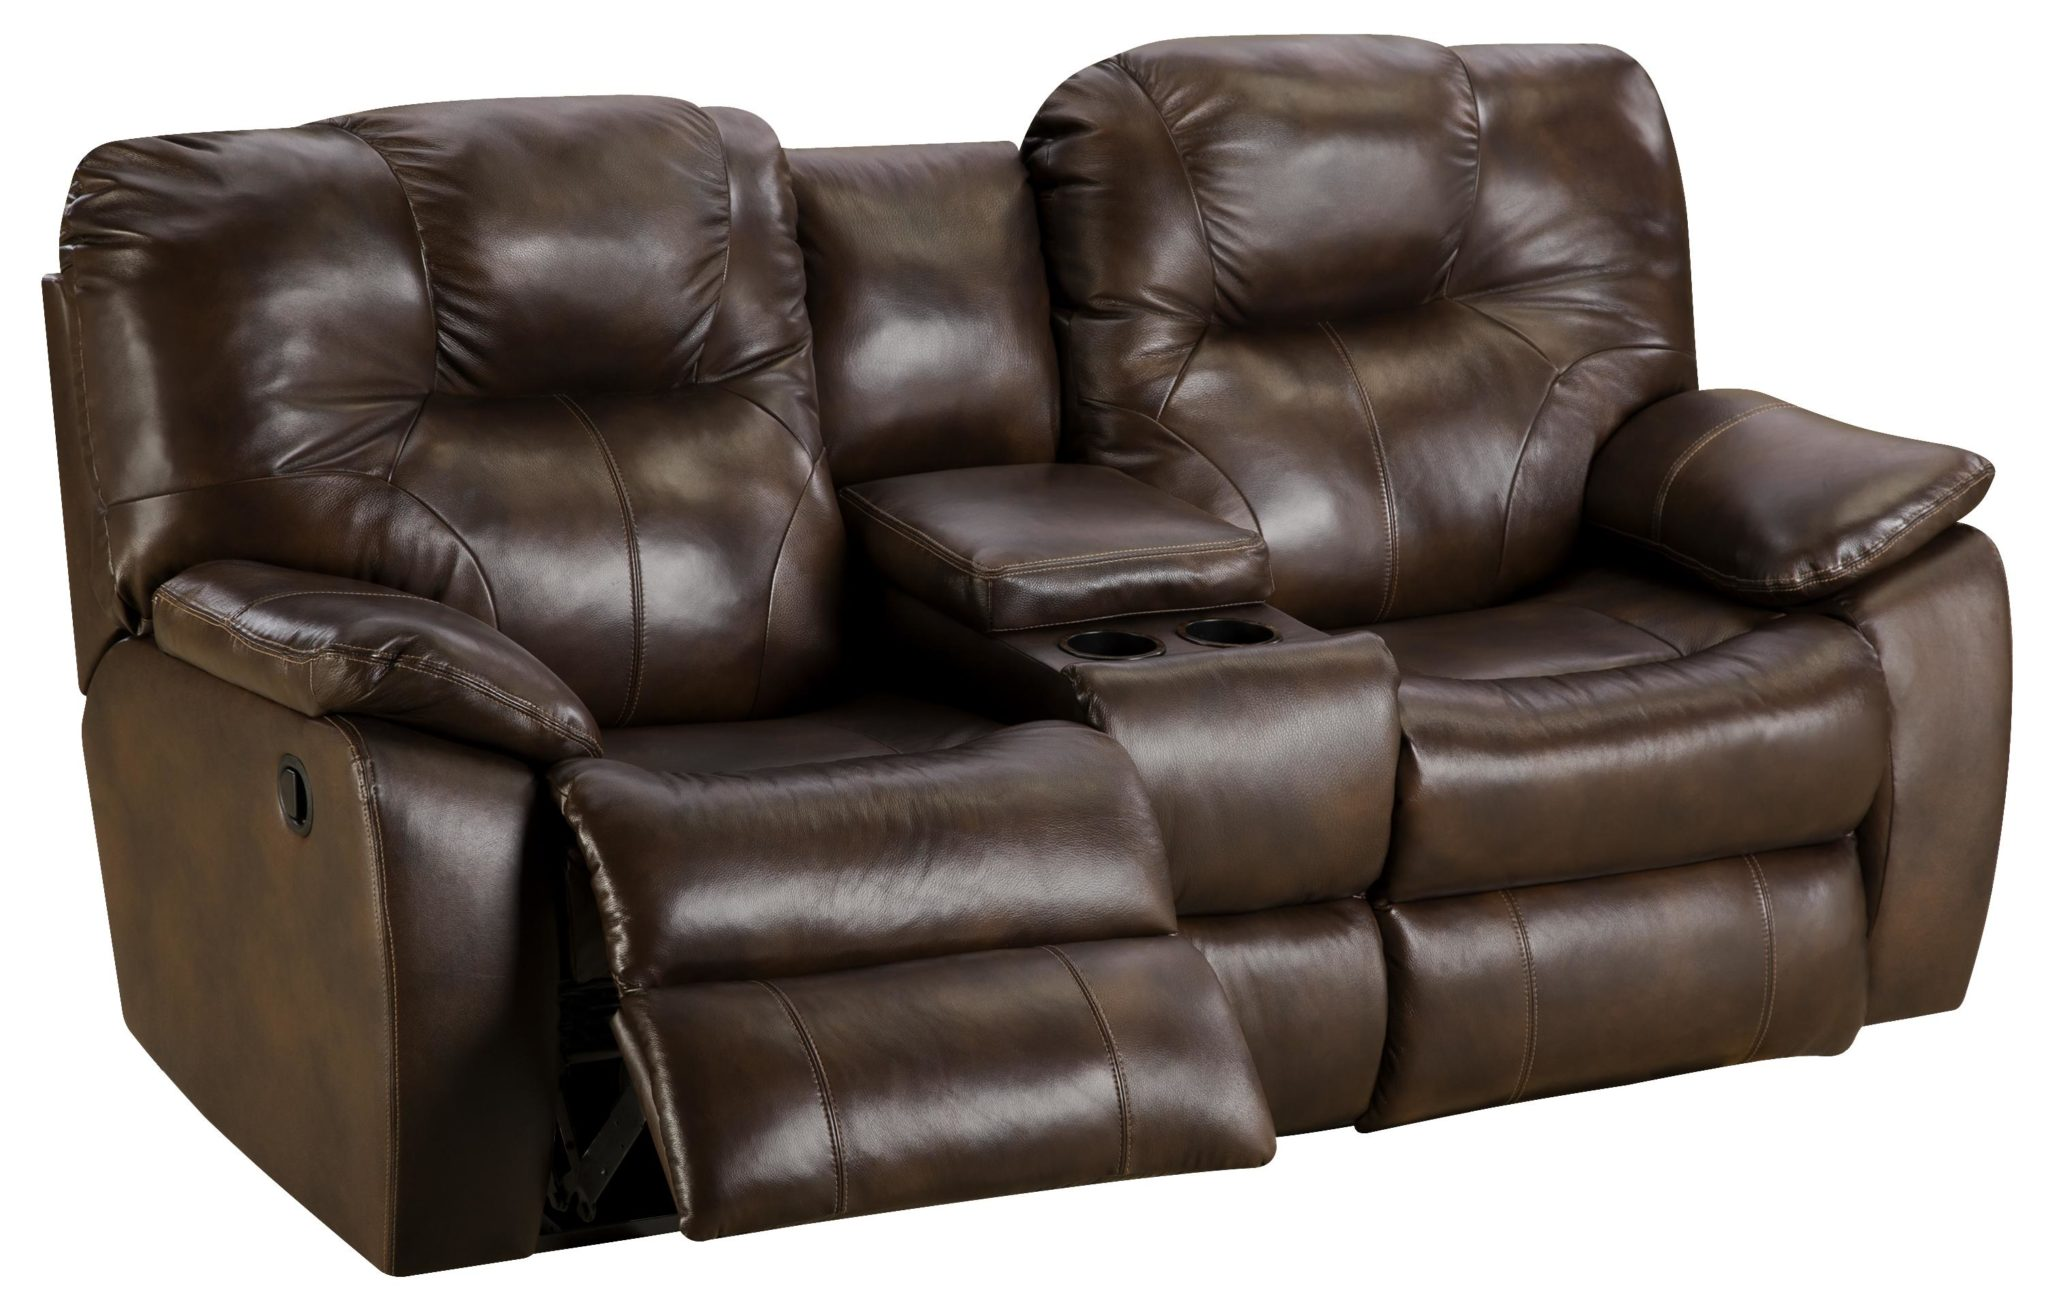 Couch And Chaise Set